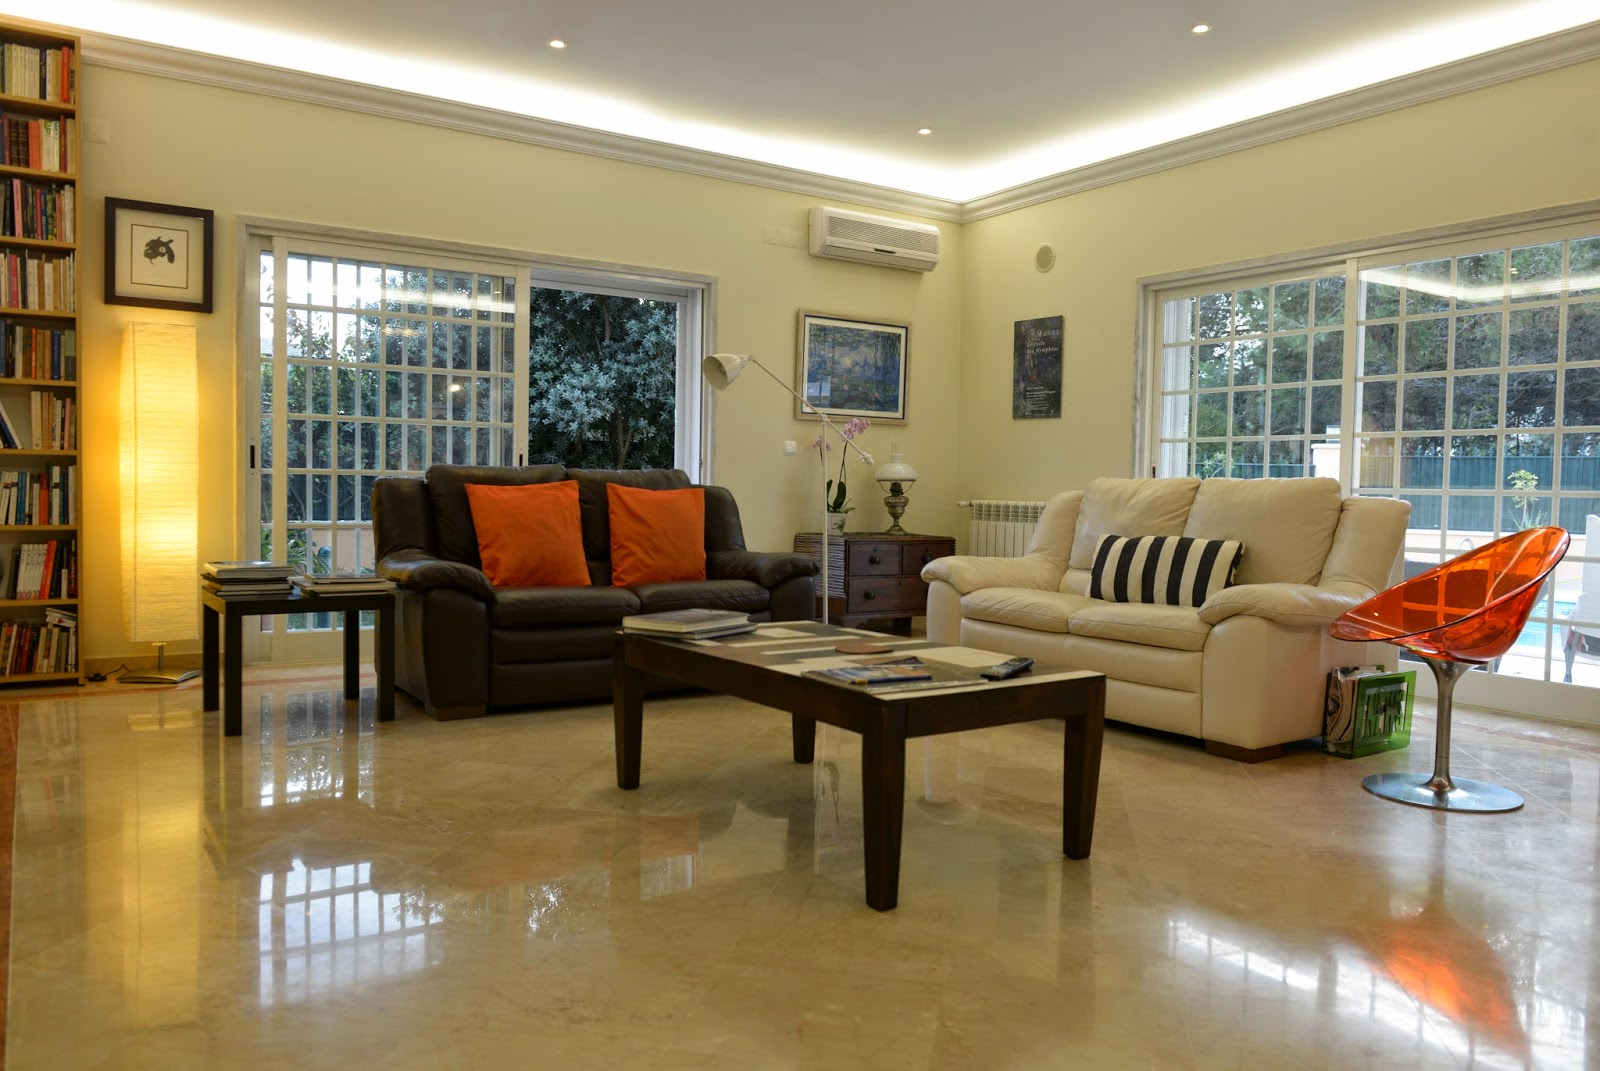 At the living room comfortable sofas are waiting for you  There you can  rest  have a nice chat  watch TV  play games  read a book or just lounge  admiring  Casa da Luisa Guest House  Casa da Luisa Guest House. Games You Can Play In Your Living Room. Home Design Ideas